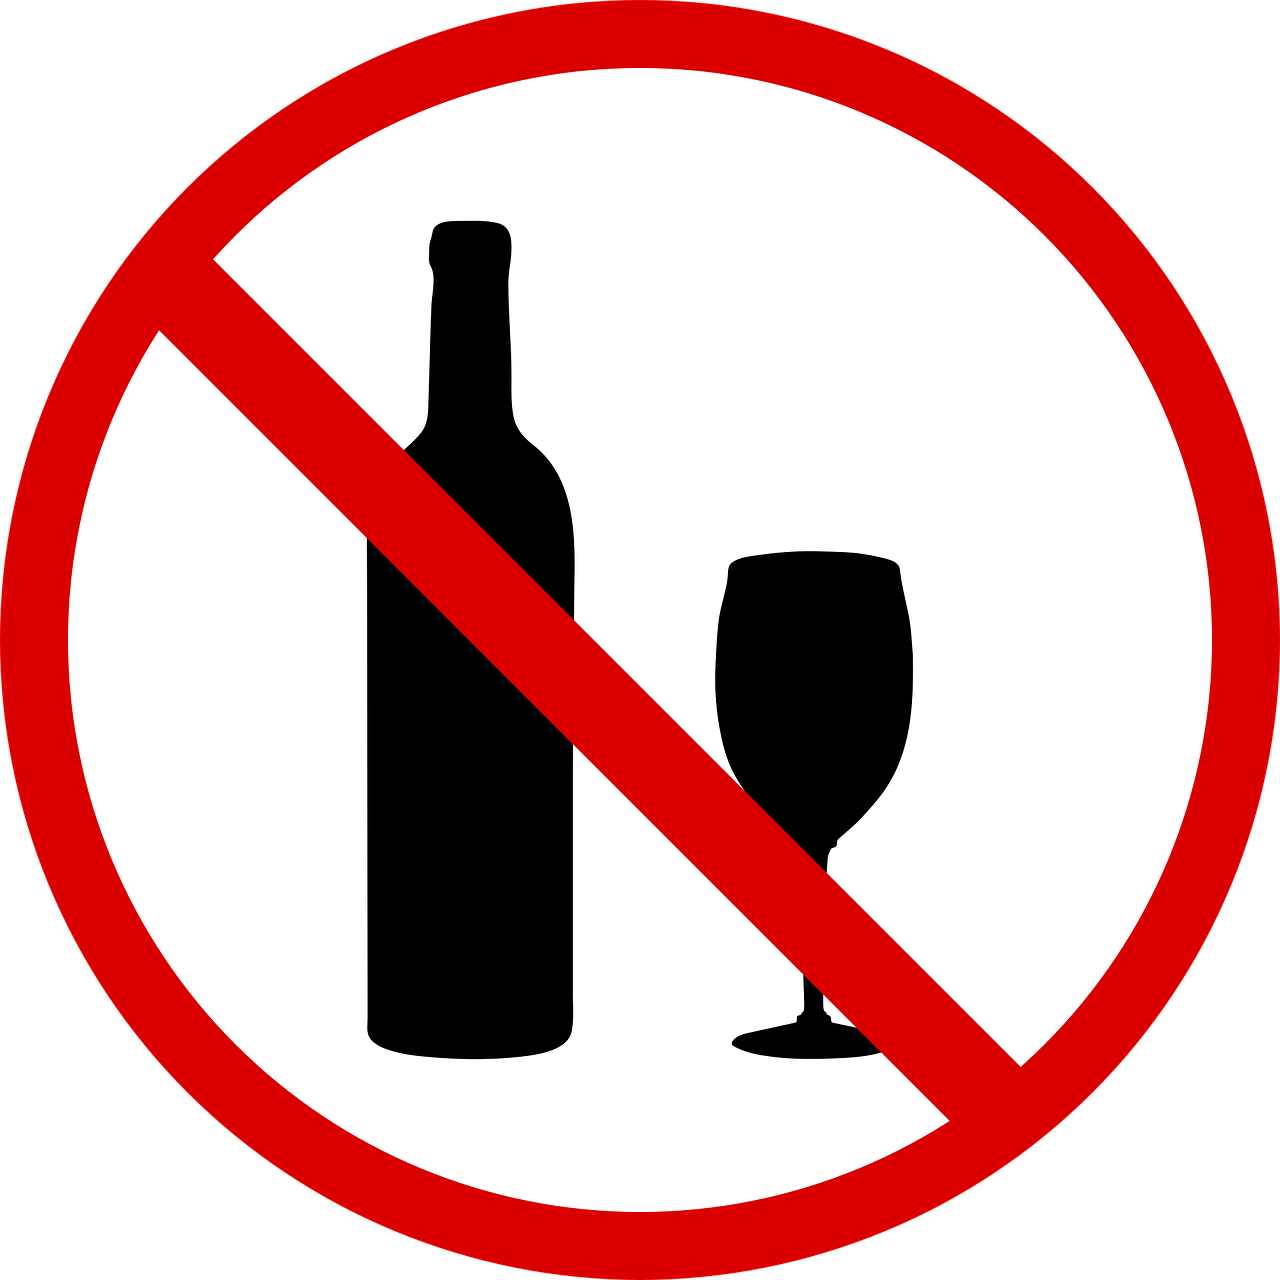 No Drinking Symbol Wine - Free vector graphic on Pixabay